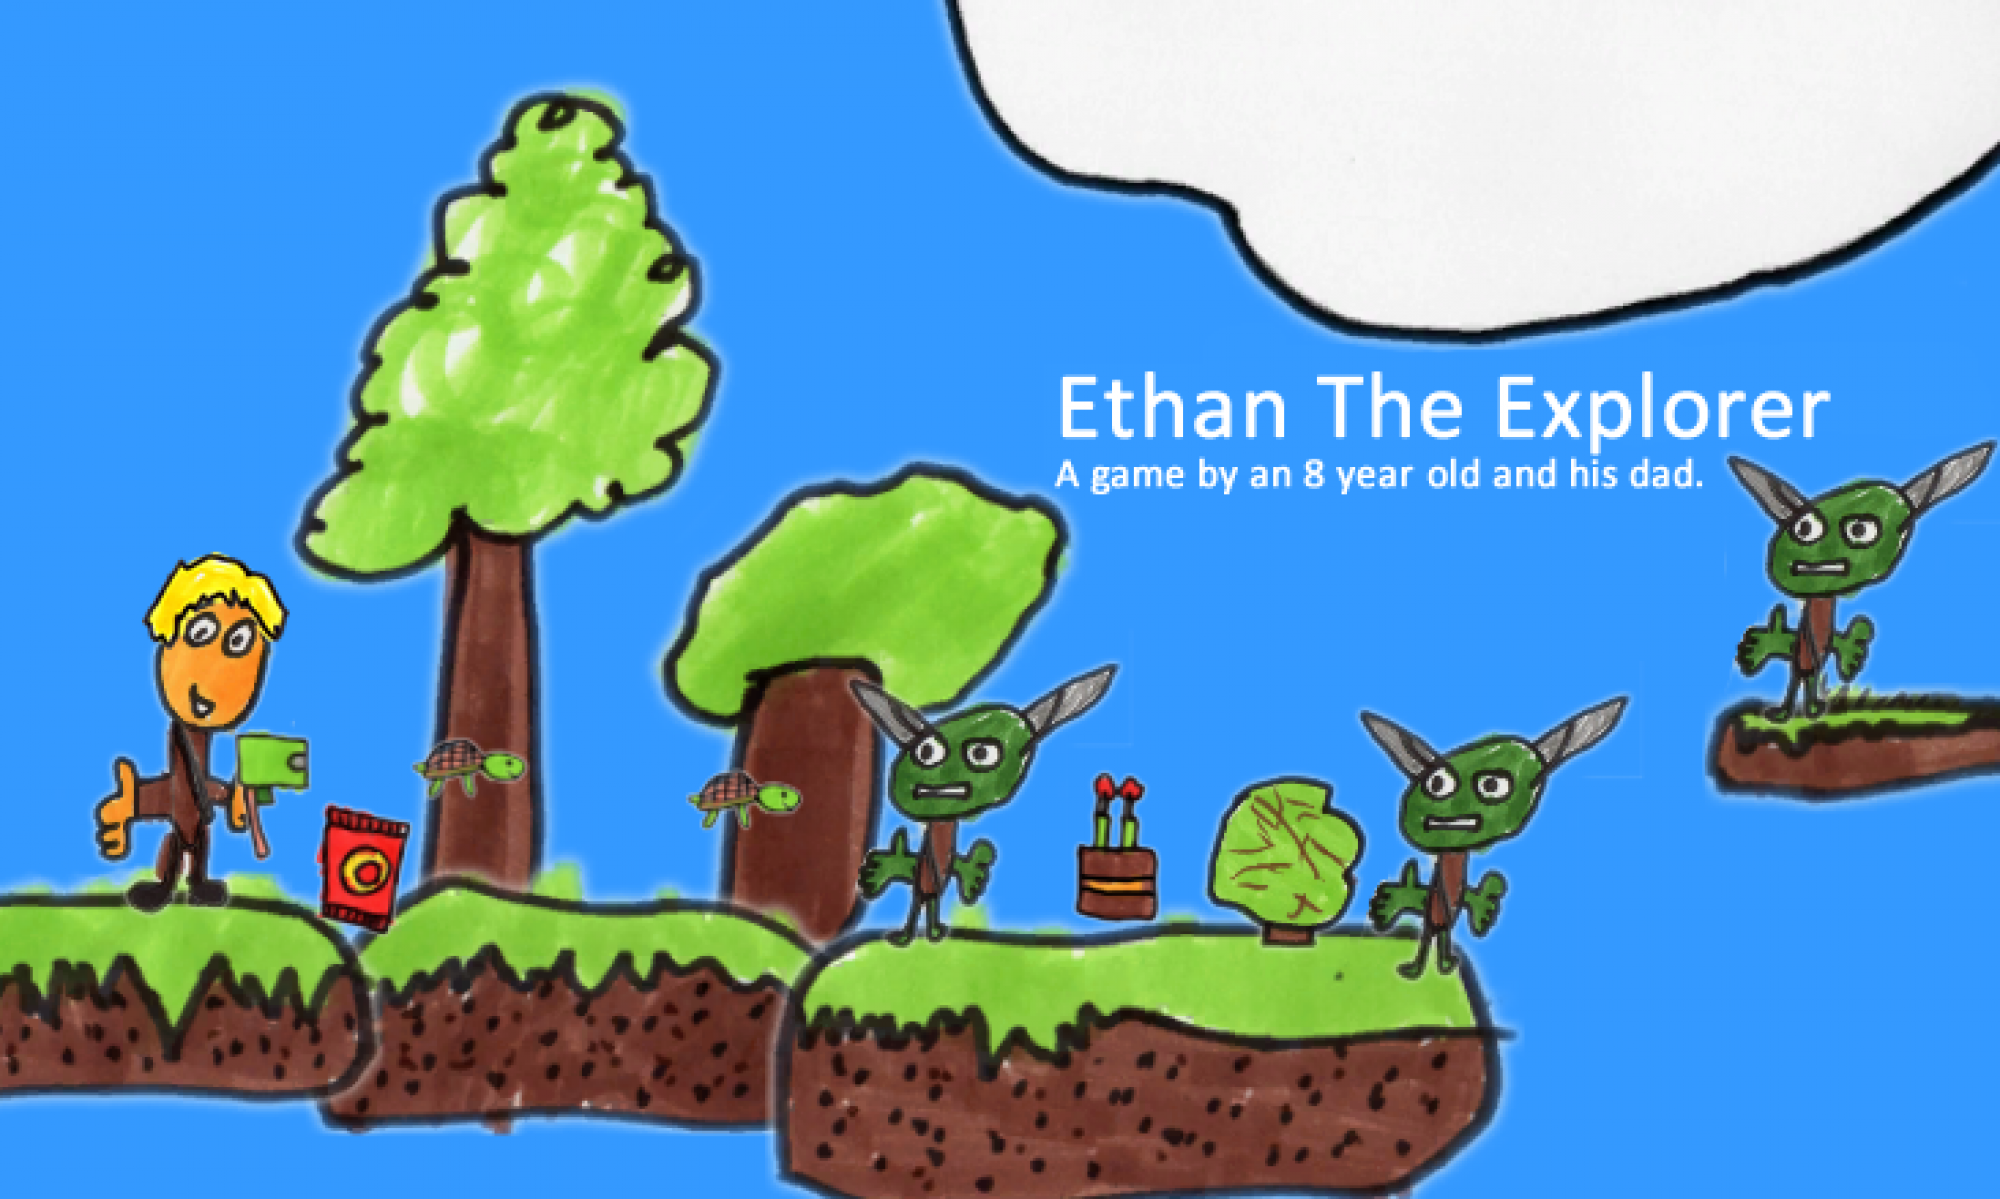 Ethan The Explorer